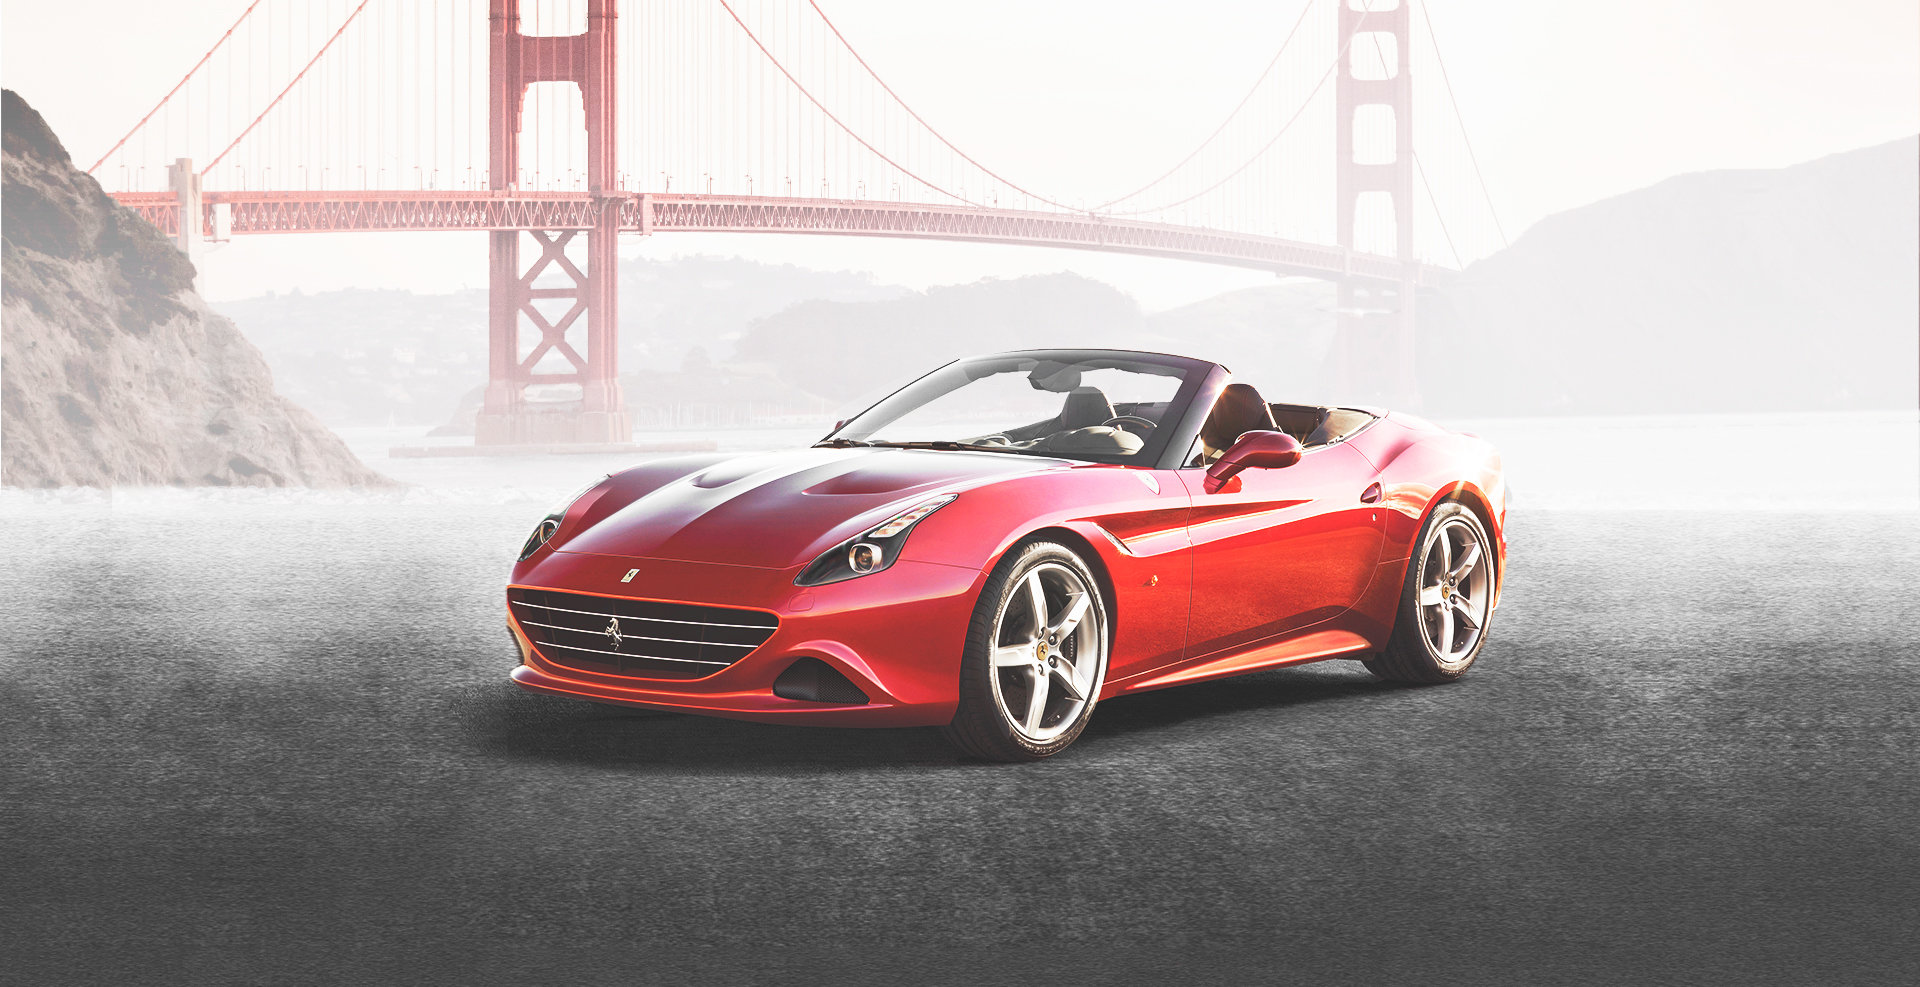 Wide World Ferrari Banner